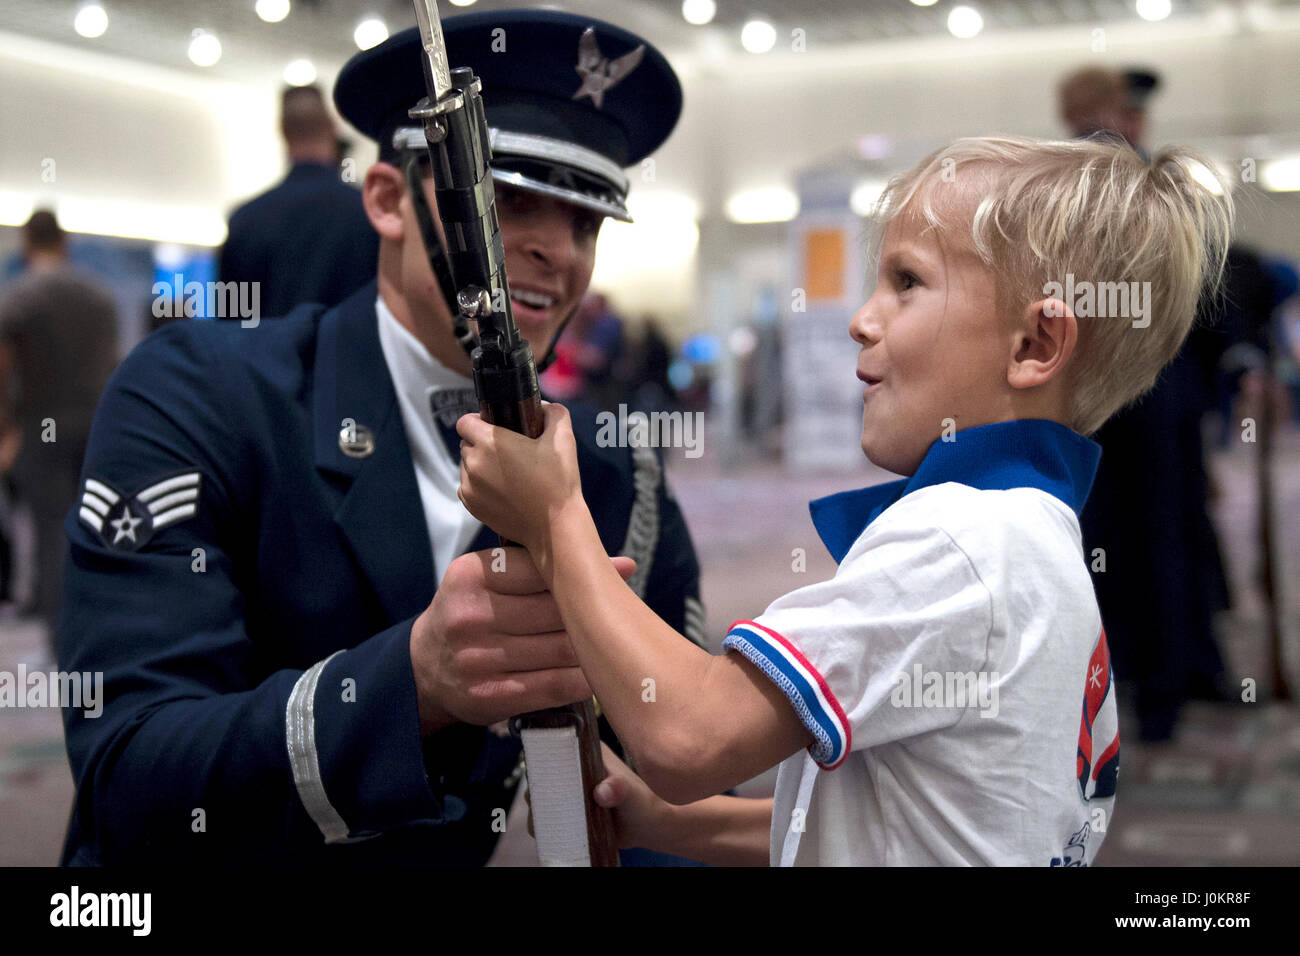 Senior Airman Angelo Hightower, an U.S. Air Force Honor Guard Drill Team member, lets a young boy hold a drill rifle - Stock Image